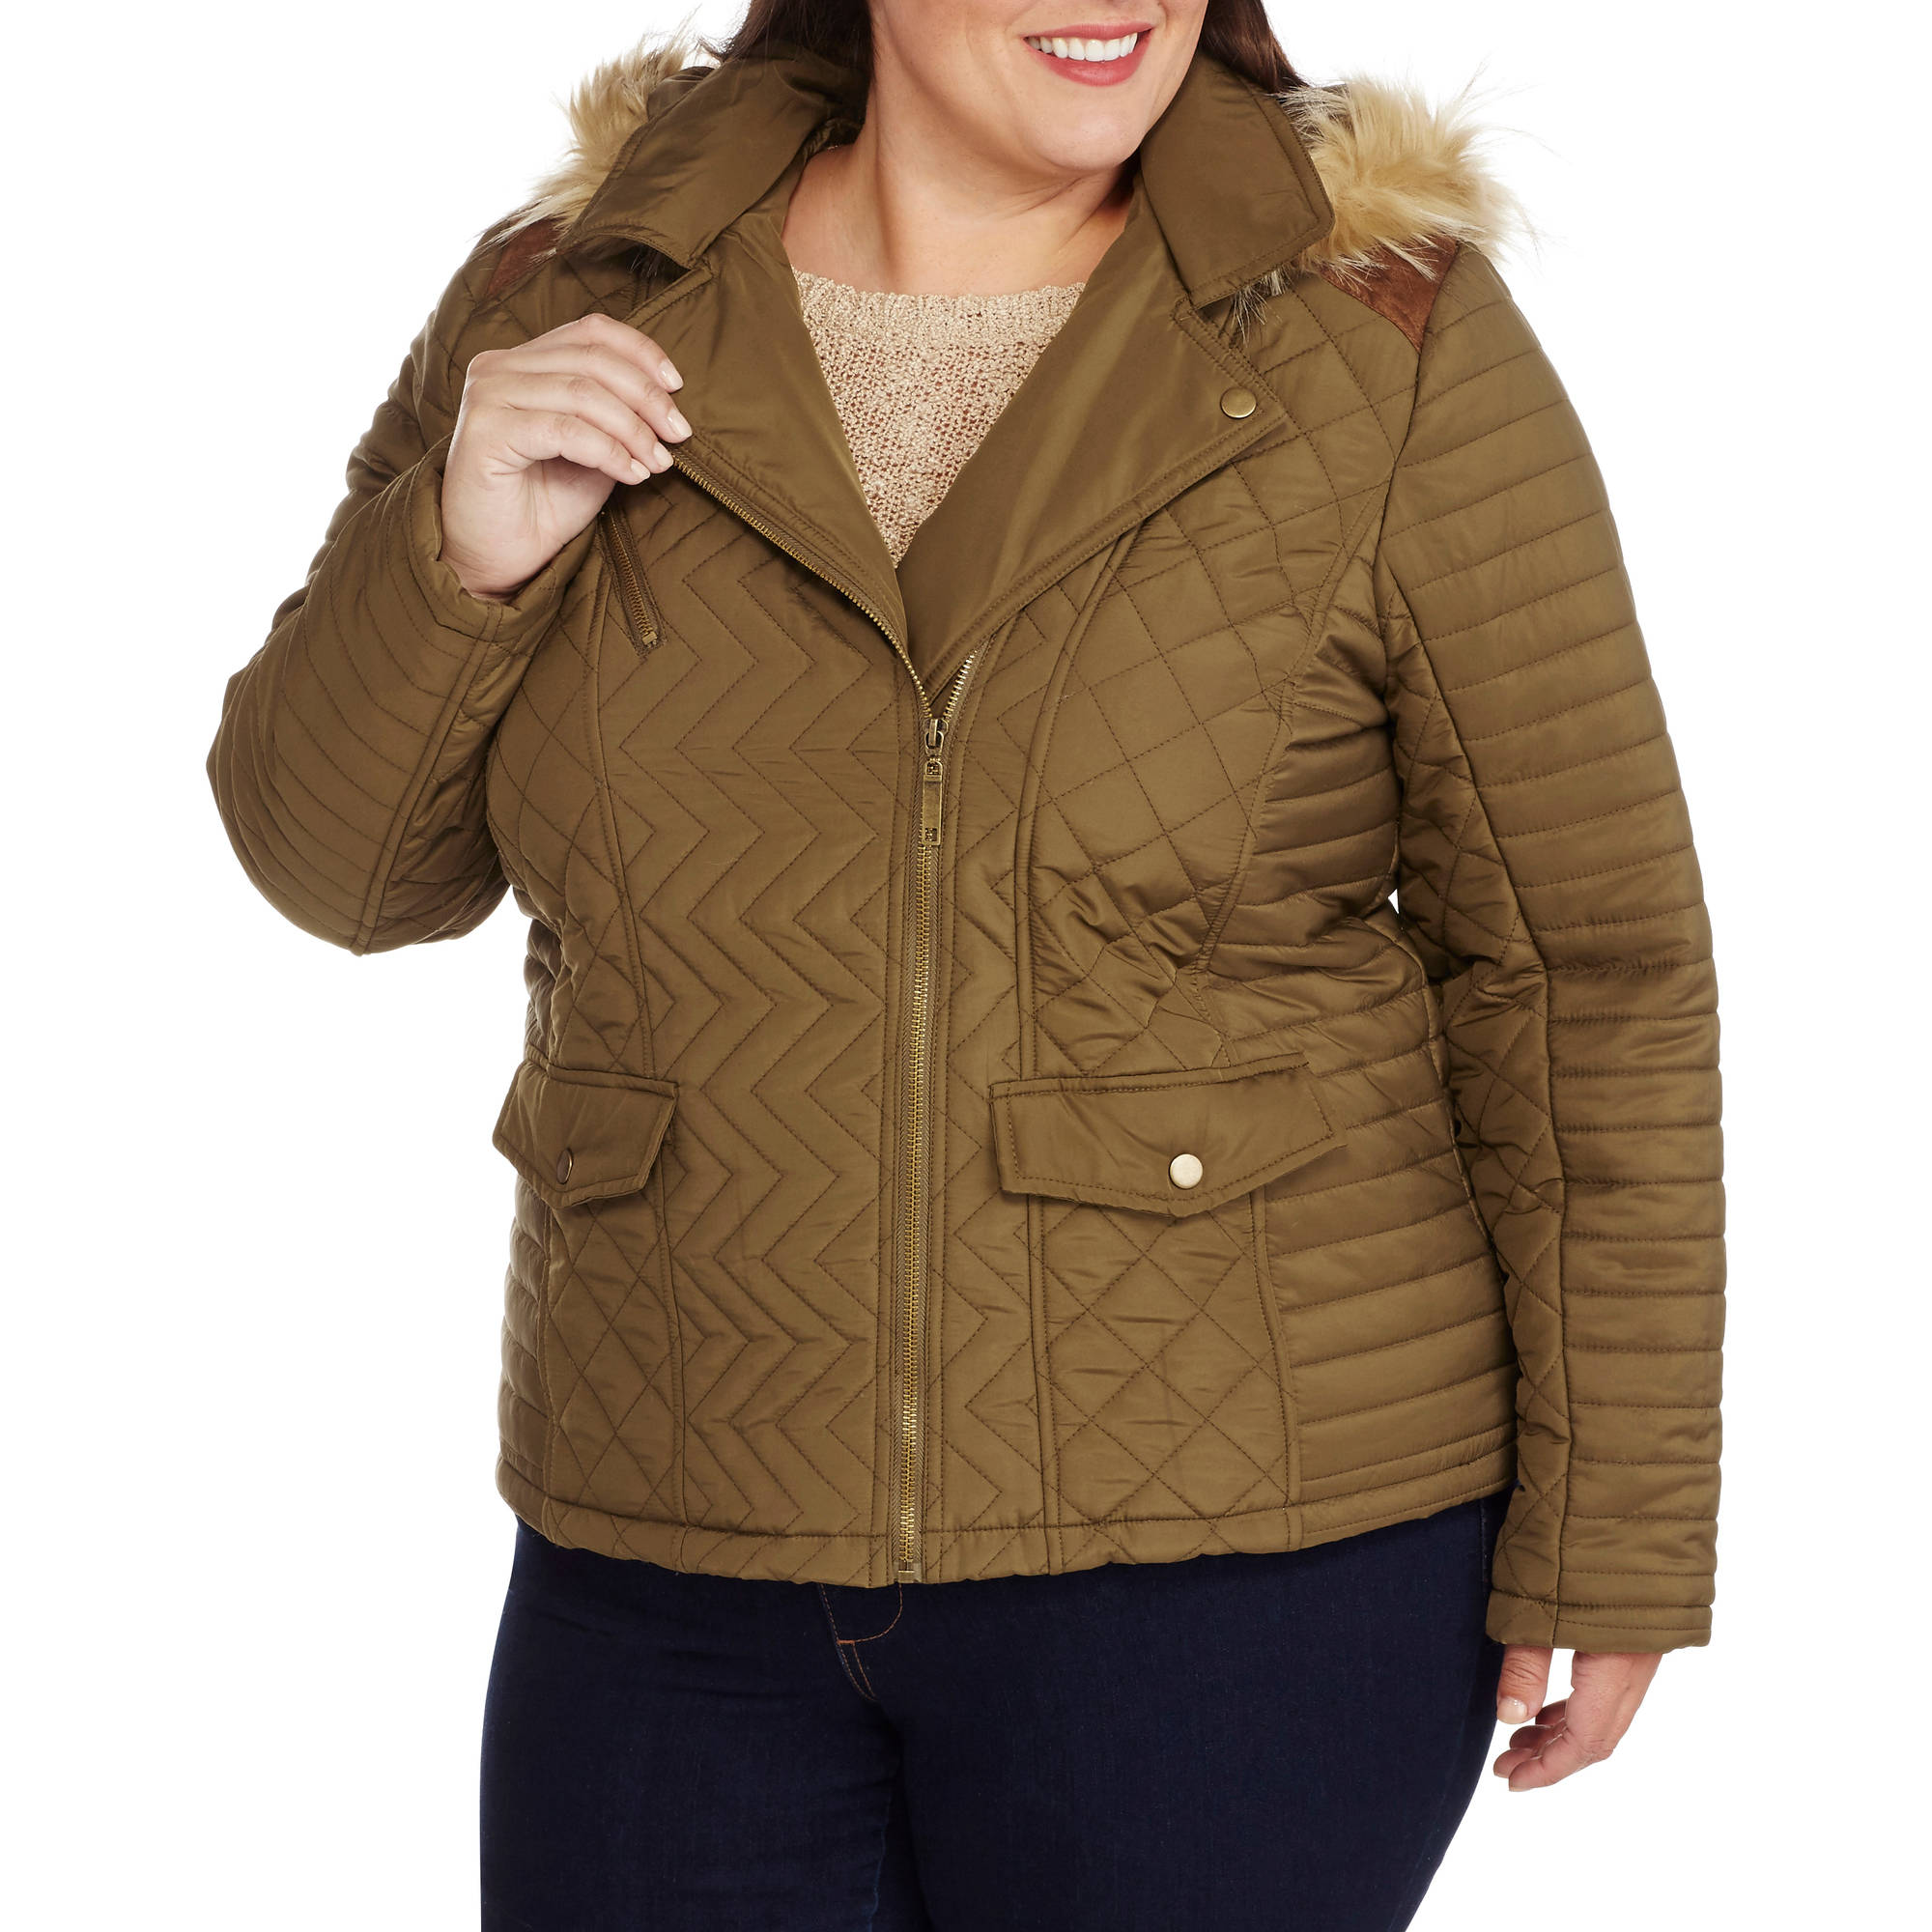 Maxwell Studio Women's Plus-Size Quilted Chevron Puffer Coat with Fur-Trim Hood